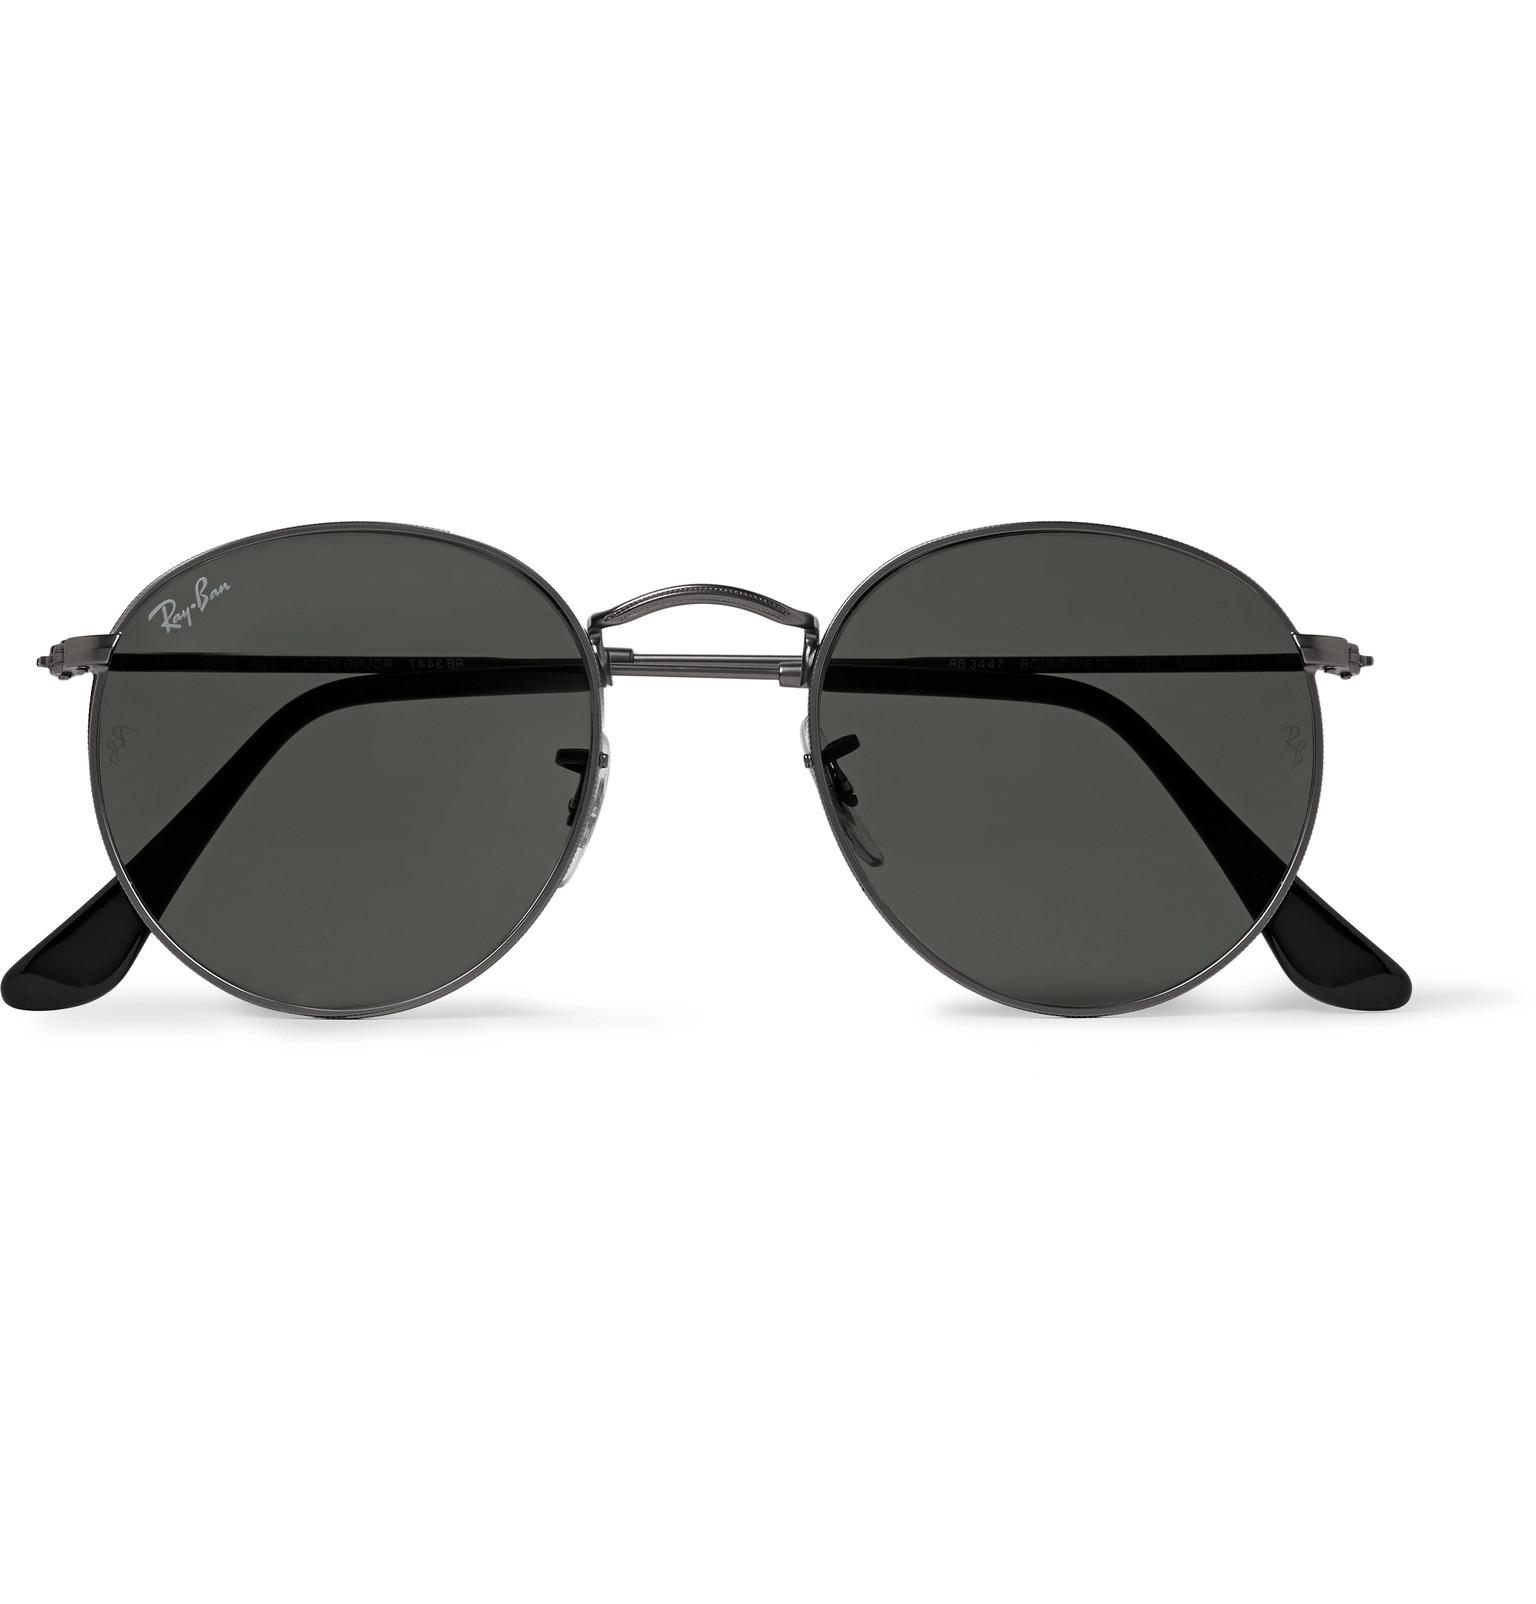 Ray Ban Round Frame Sunglasses : Ray-ban Round-frame Gunmetal-tone Sunglasses for Men Lyst